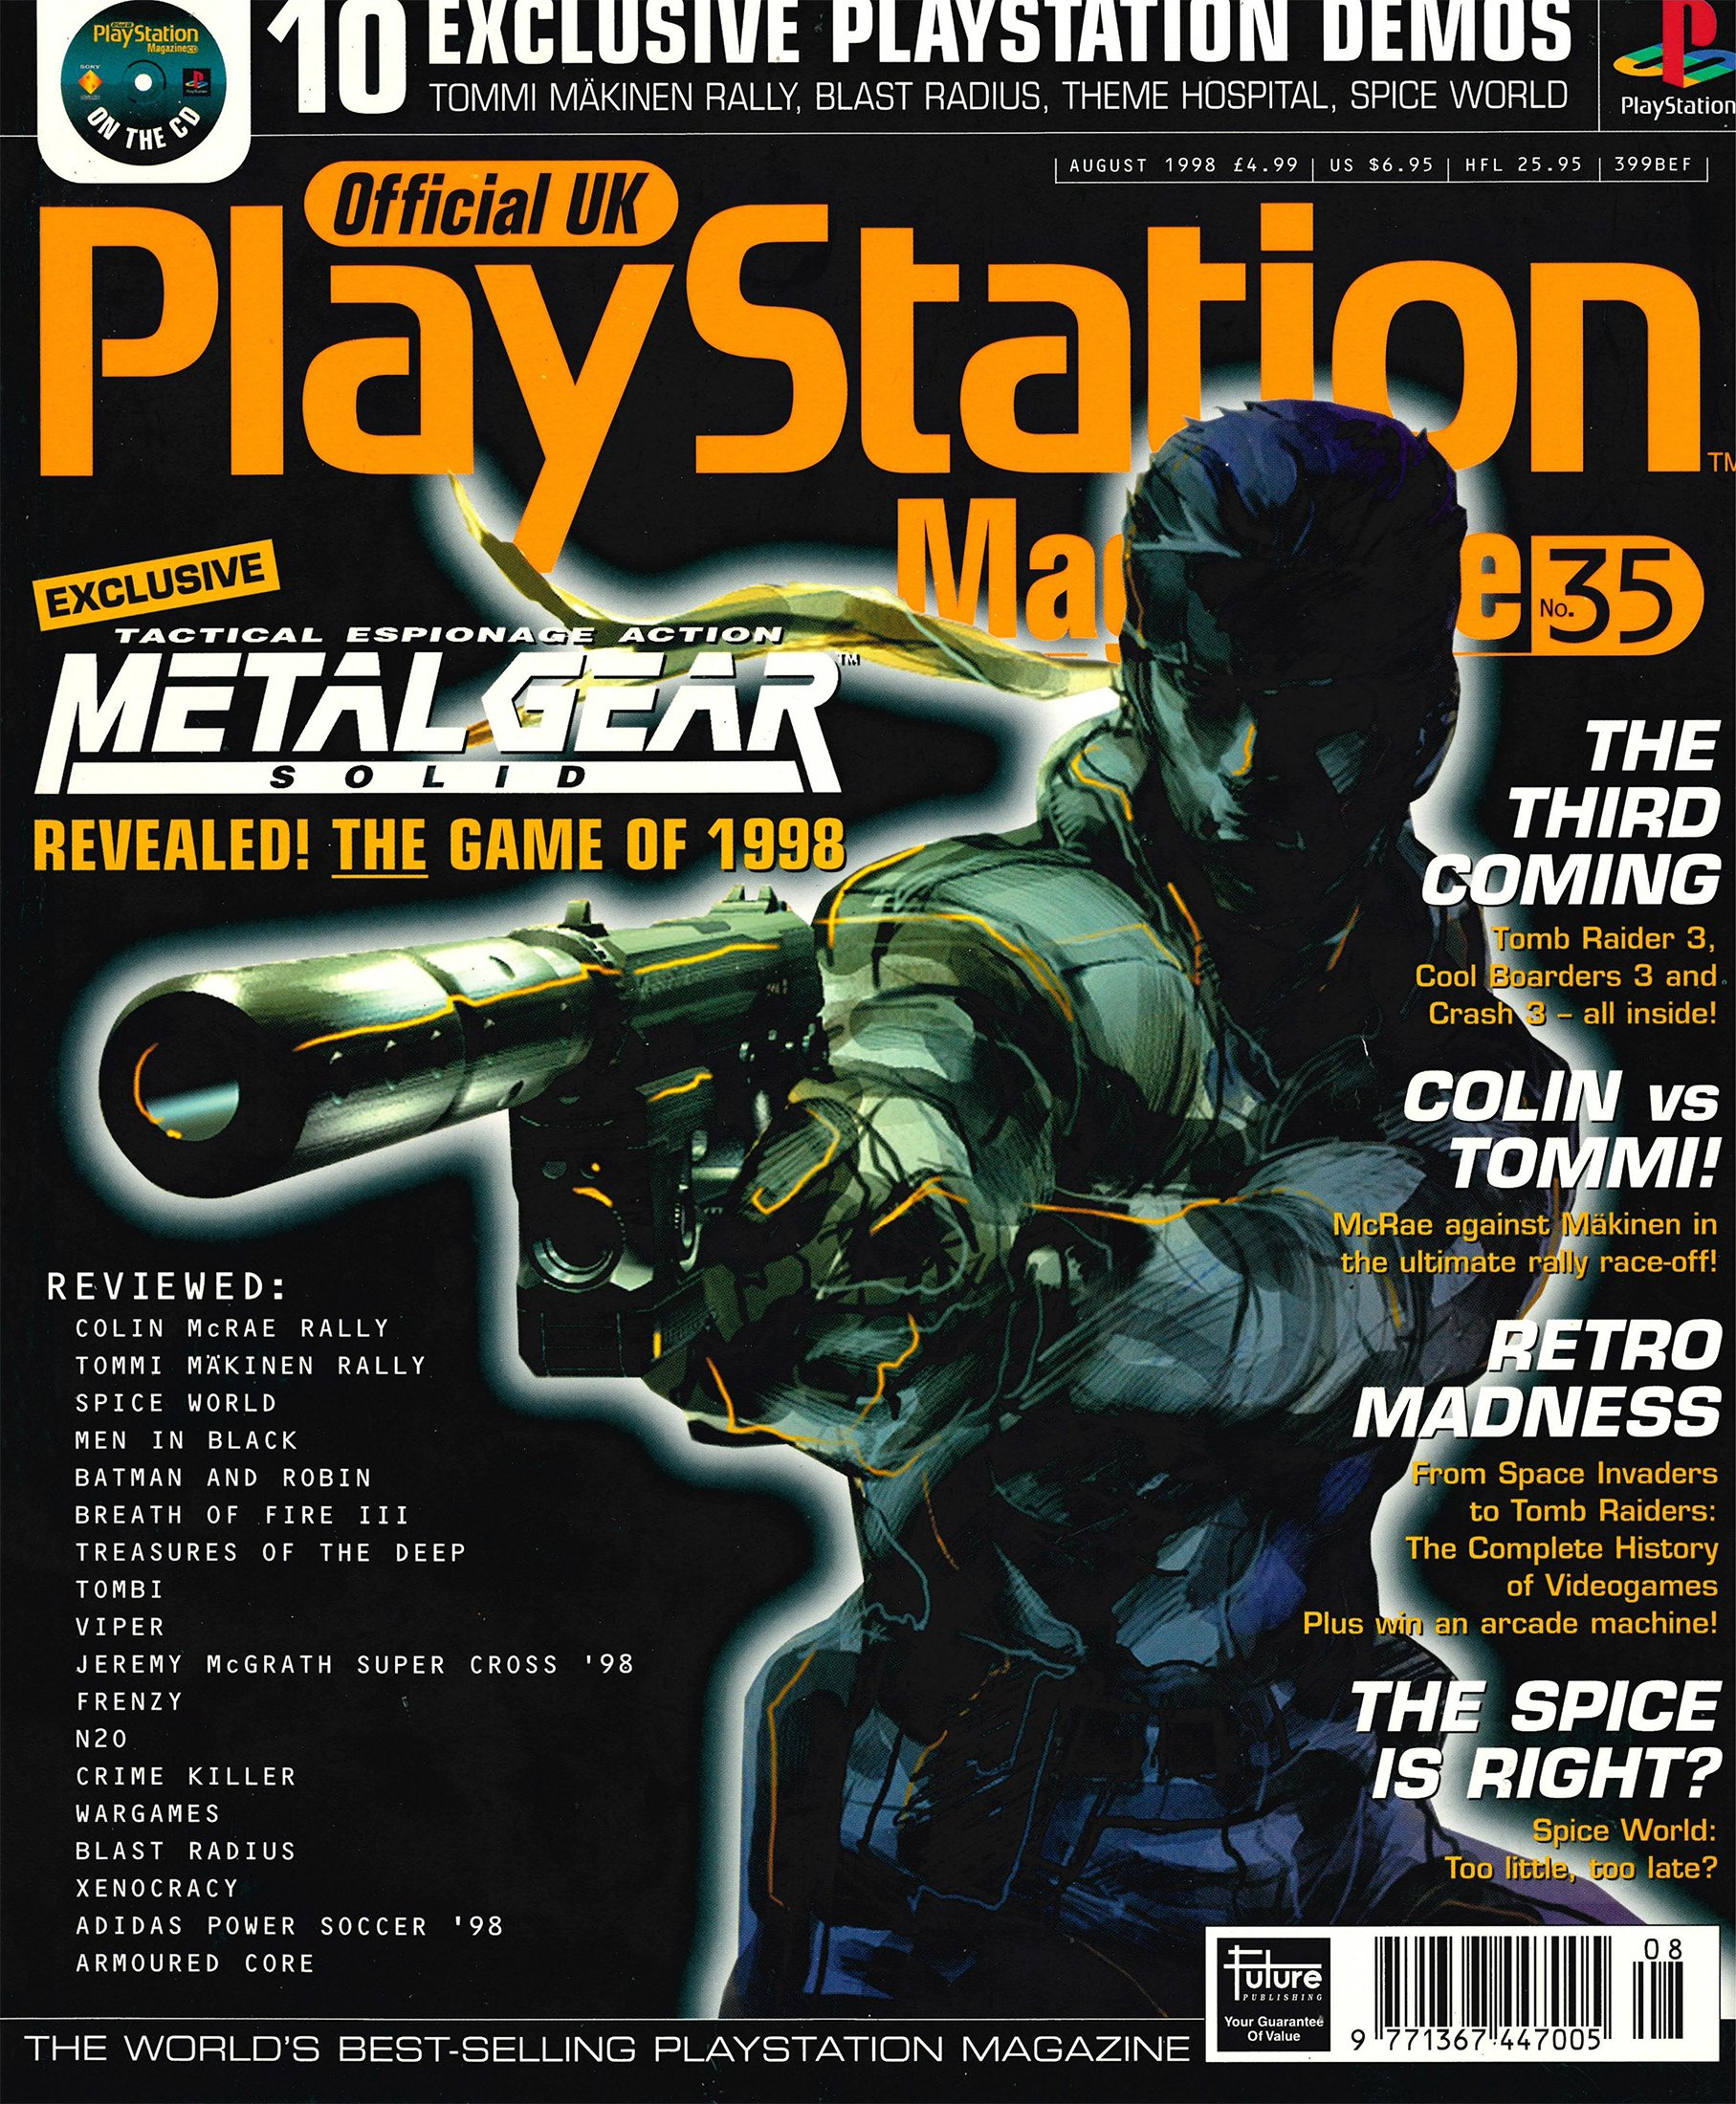 Official UK PlayStation Magazine Issue 035 (August 1998)